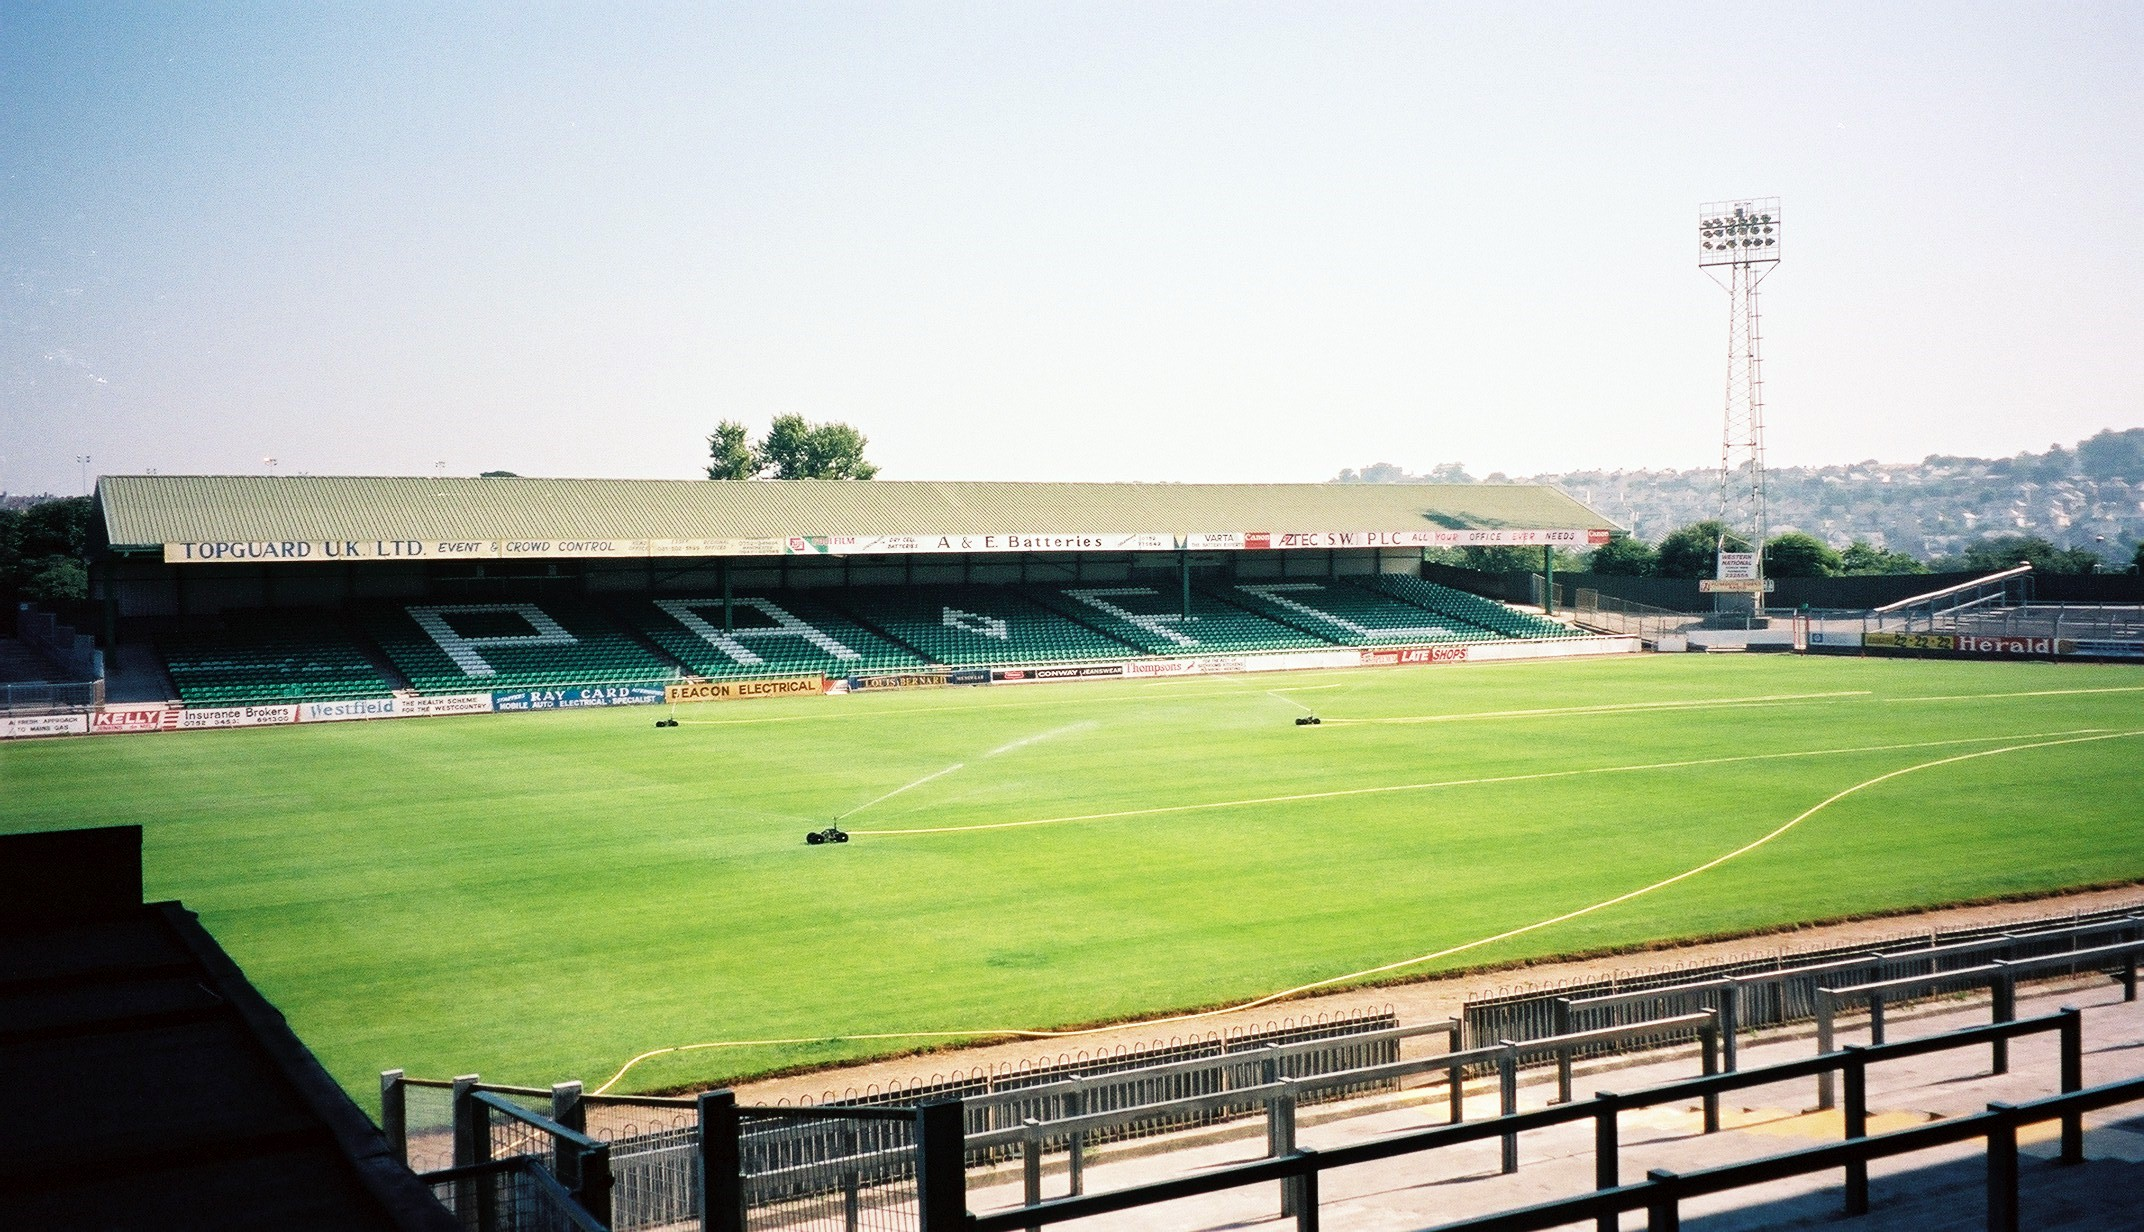 Home Park Plymouth Is An All Seater Football Stadium In The Central